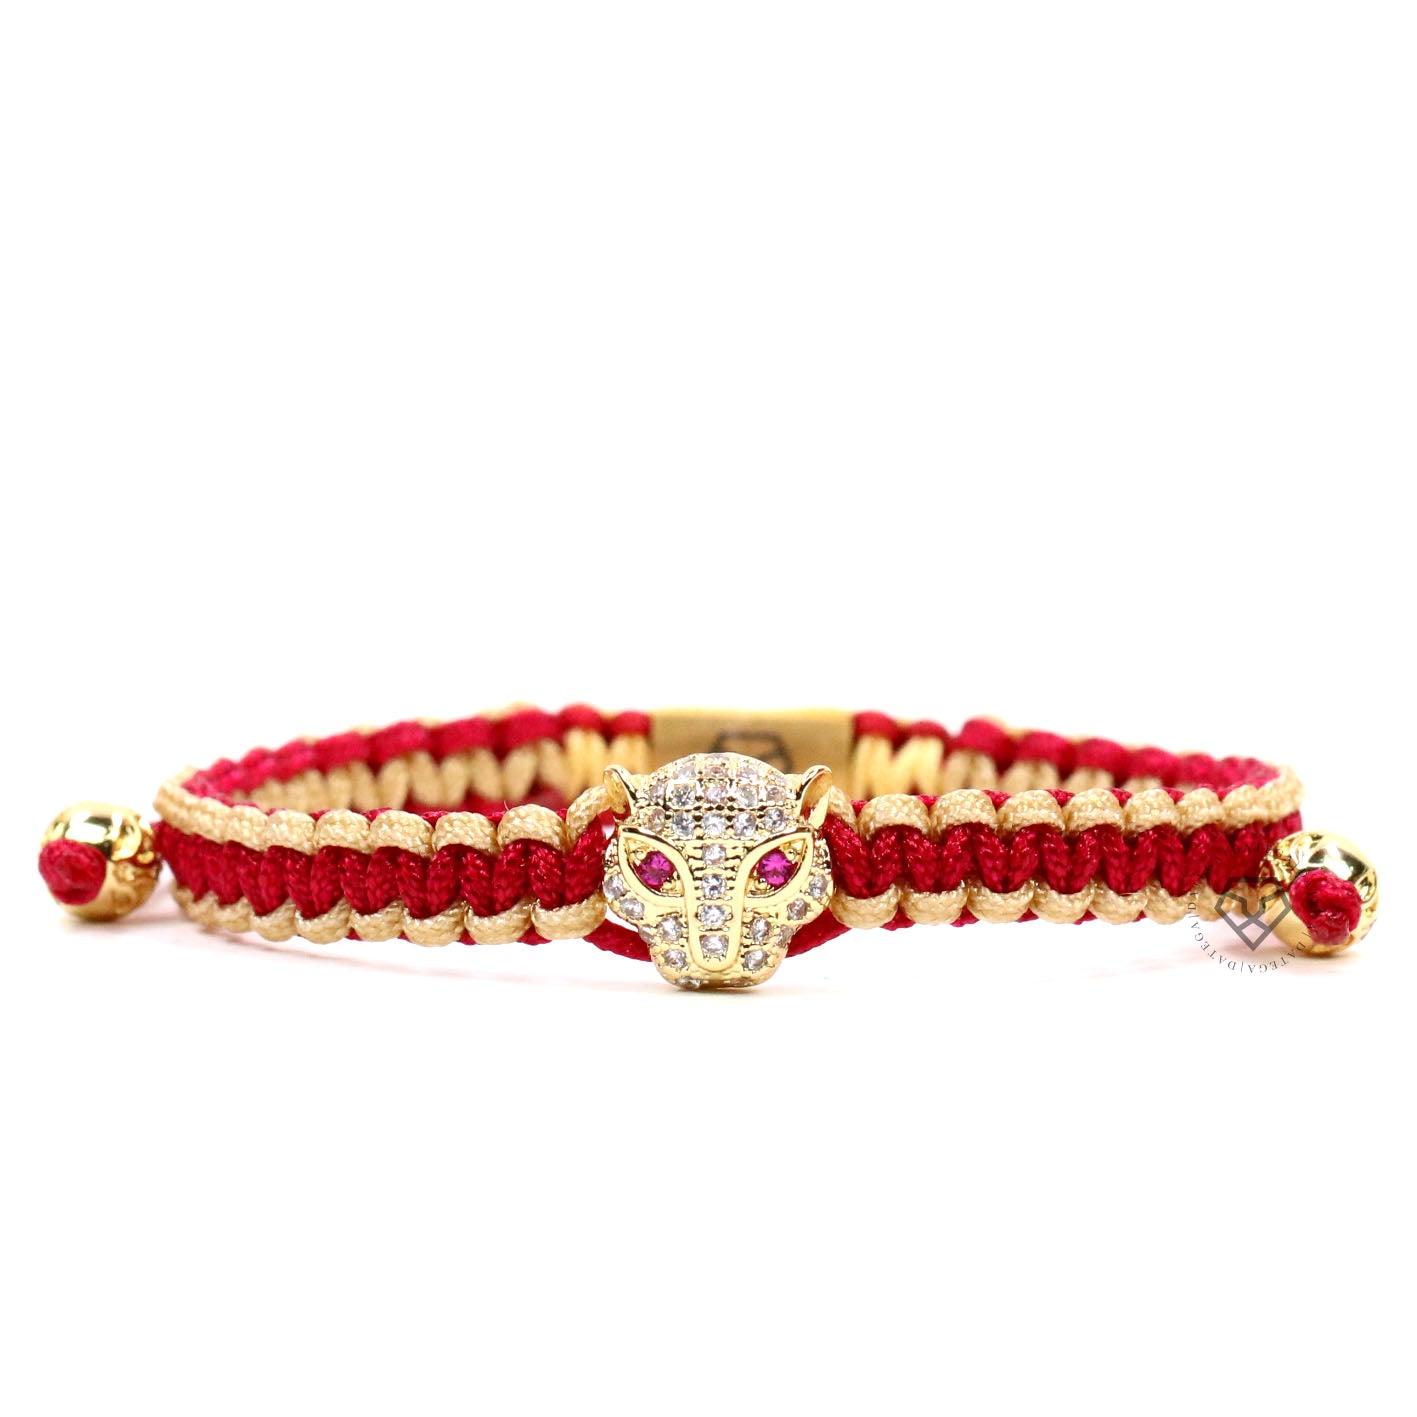 Jaguar Yellow Gold Clear Cz - Cherry & Caramel Rope